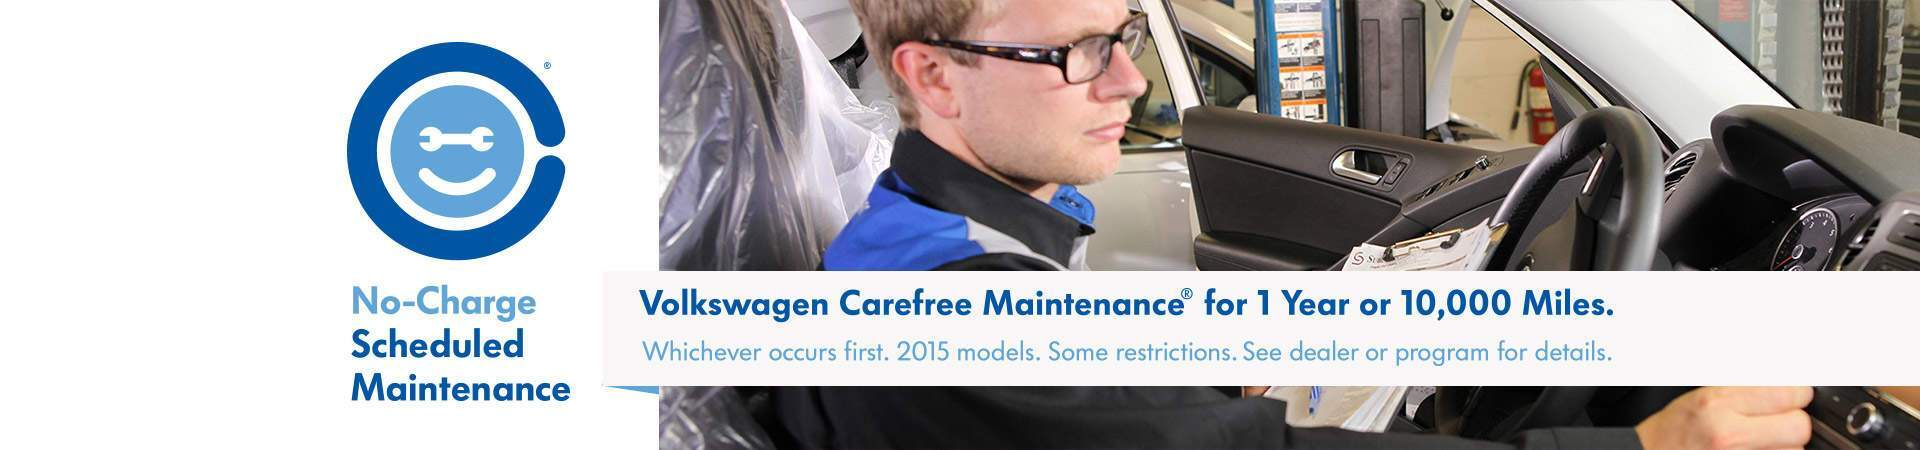 VW Carefree Mainenance